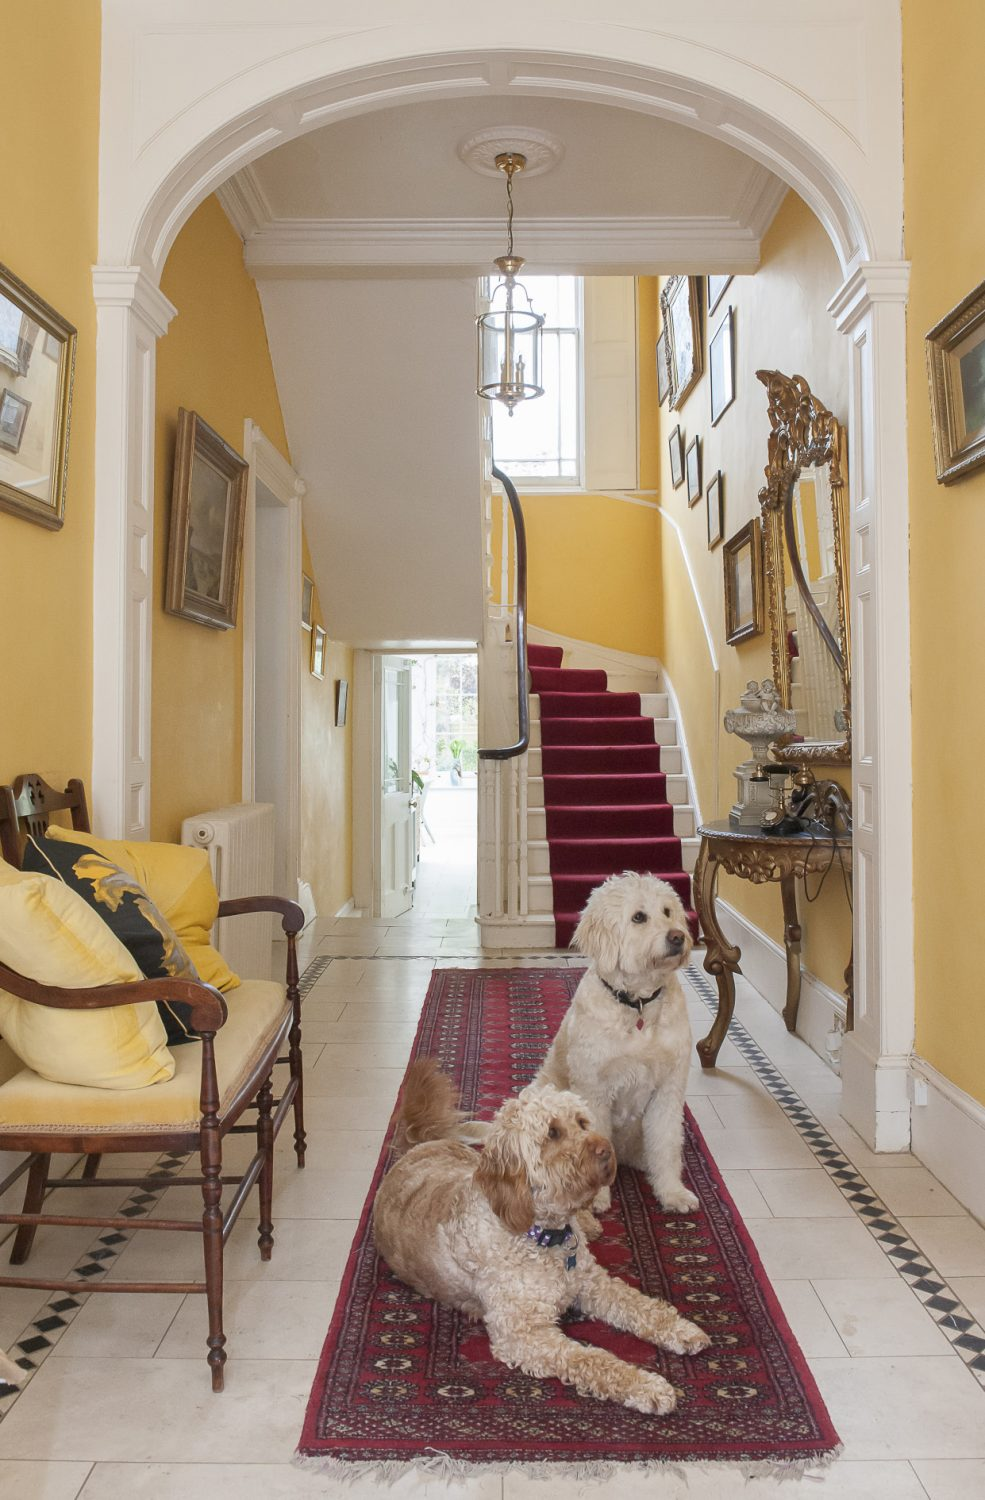 Dawn's Goldendoodles wait patiently to be photographed in the hallway